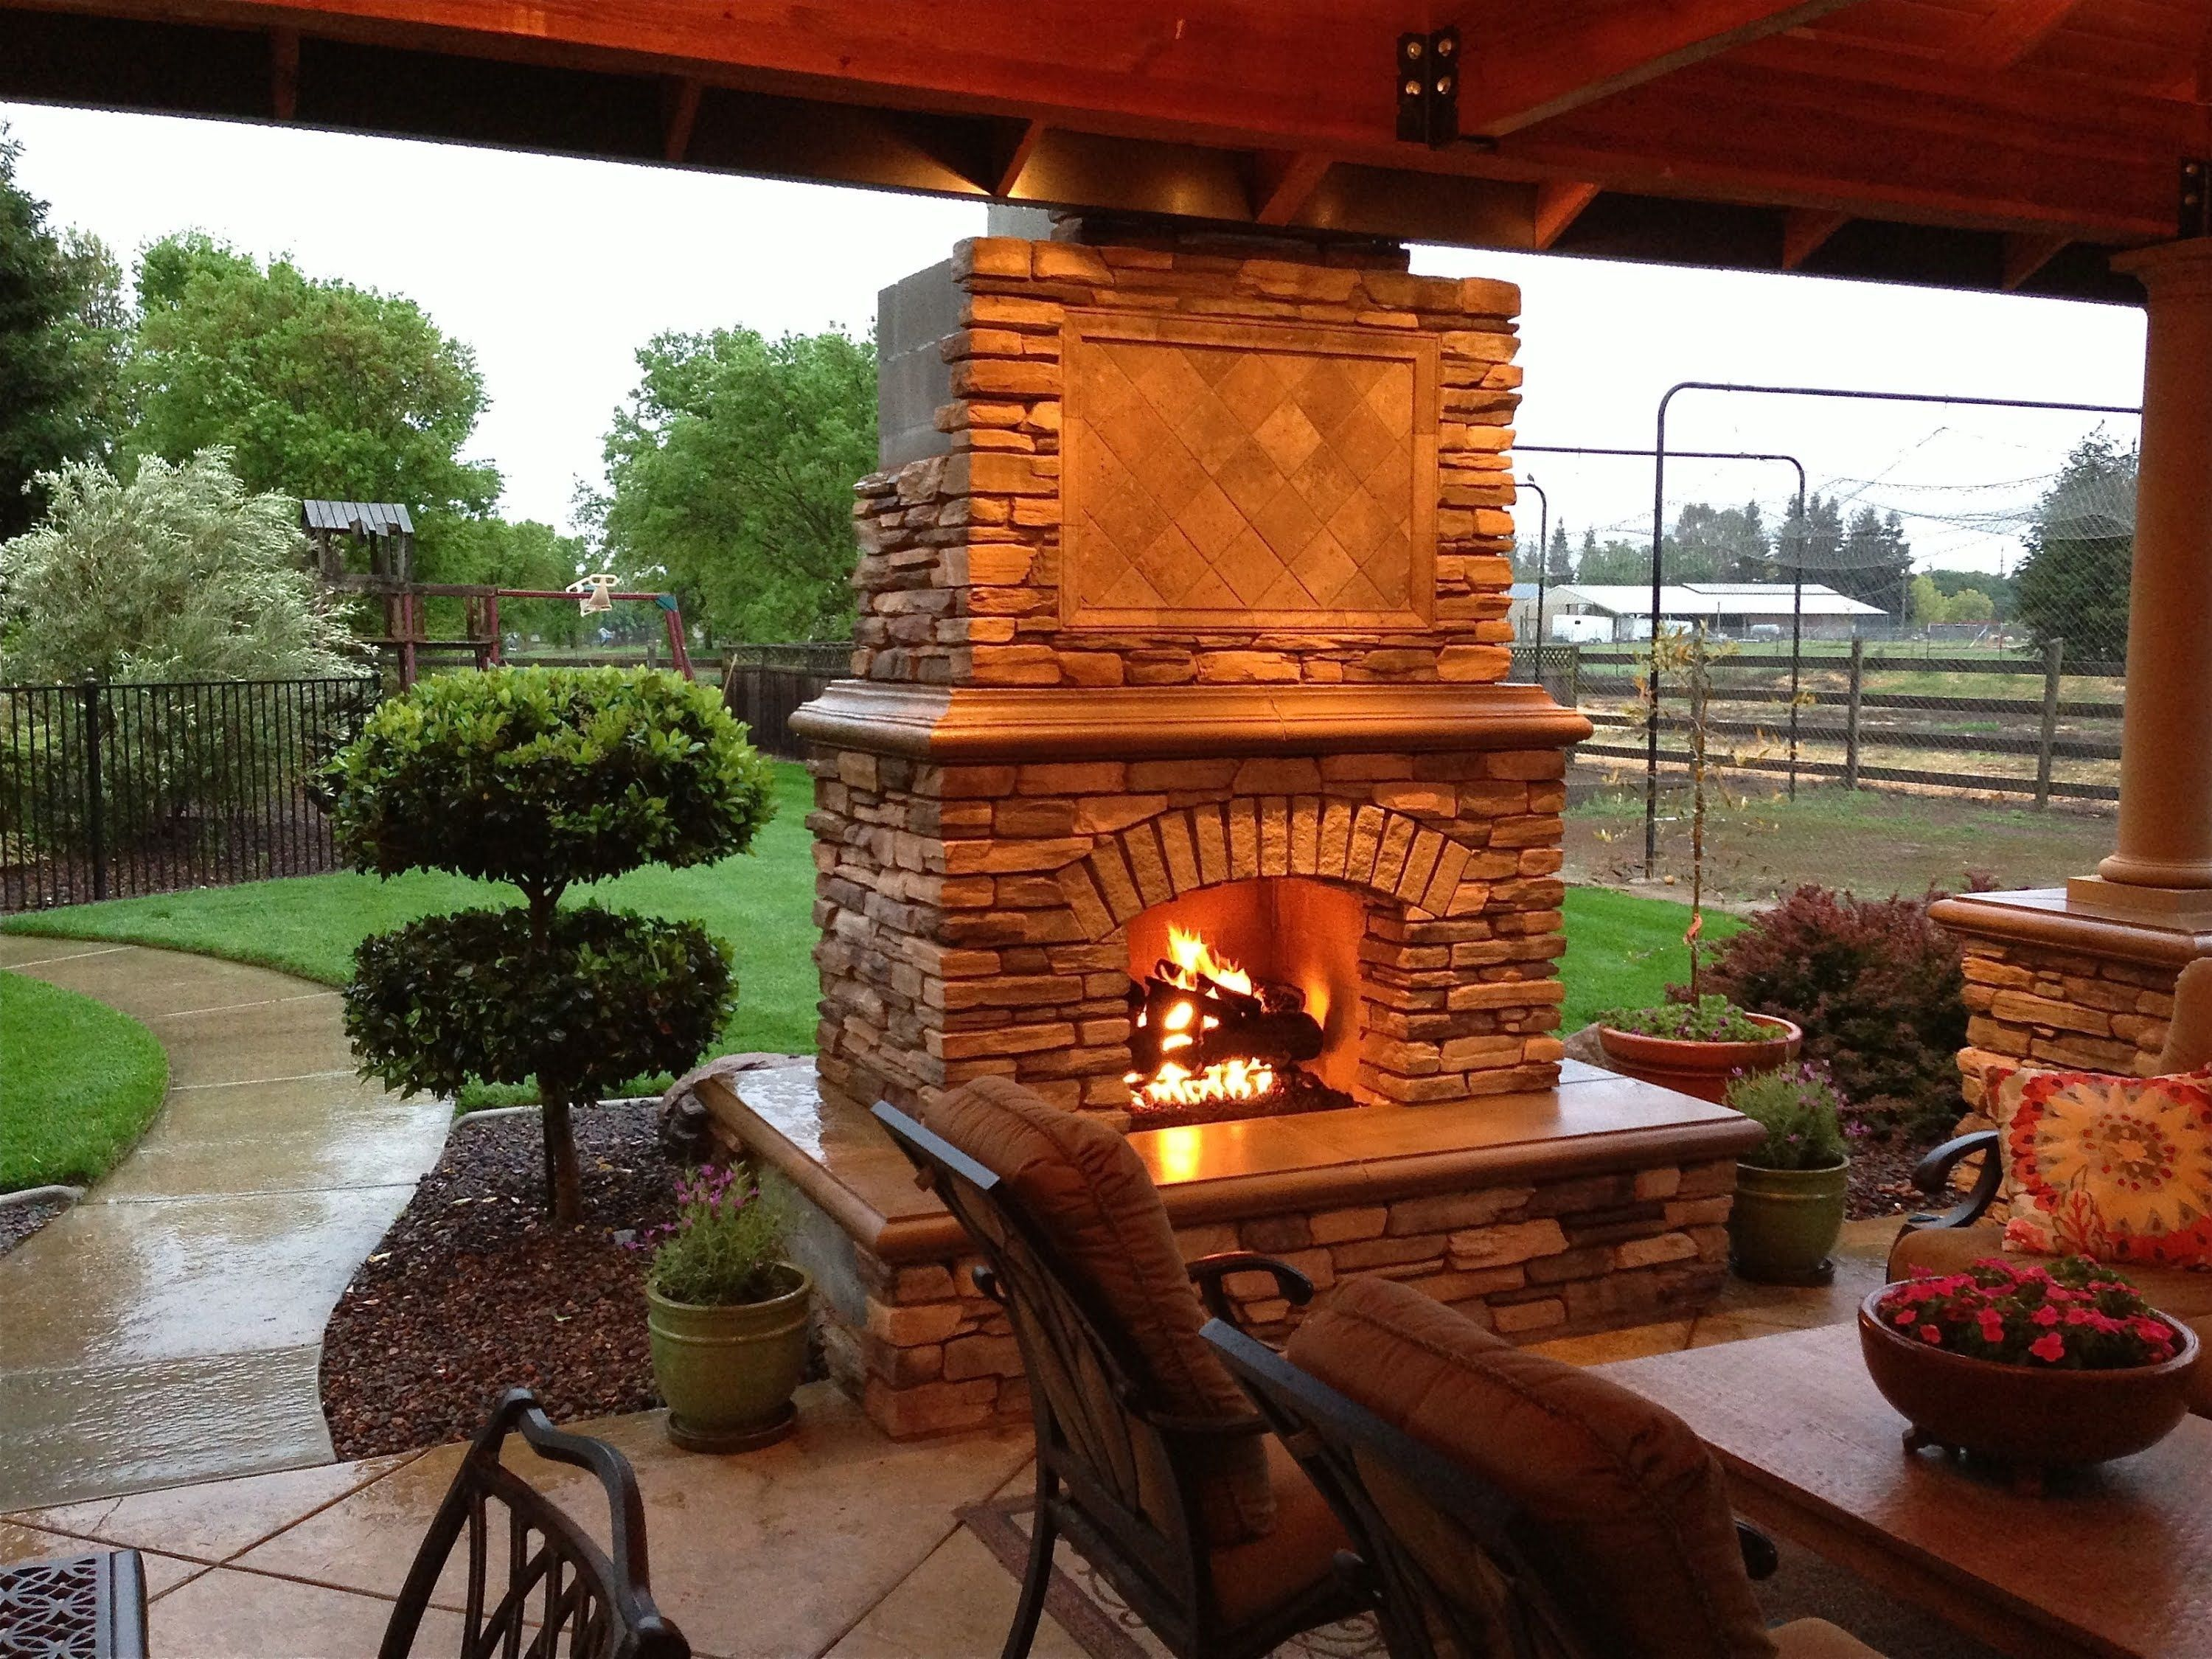 How Much Does An Outdoor Kitchen Cost Design Neat Kitchen Planner Painted Cabinets Outdoor Stone Fireplaces Outdoor Fireplace Outdoor Wood Burning Fireplace